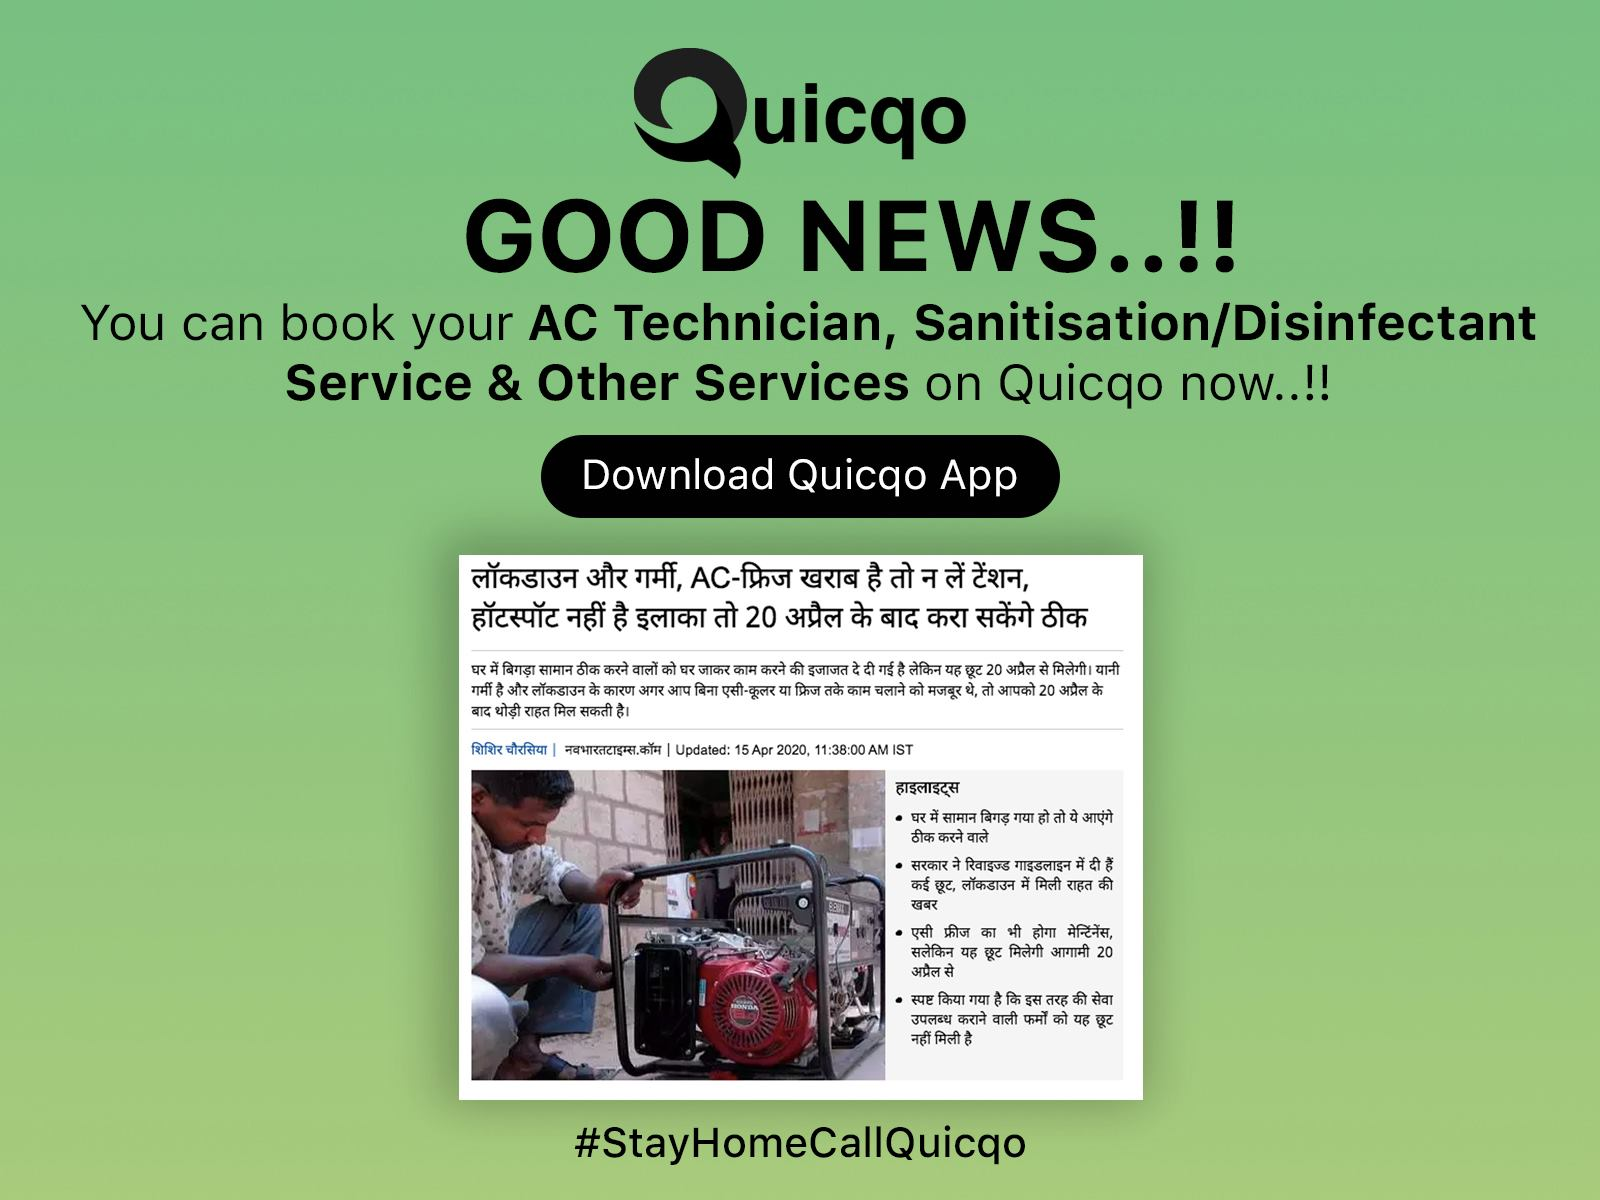 Quicqo On Twitter Good News You Can Book Your Ac Technician Sanitisation Disinfectant Service Other Services On Quicqo Now Download Quicqo App Https T Co Enao7aoijq Https T Co Ybqx4bqn3c